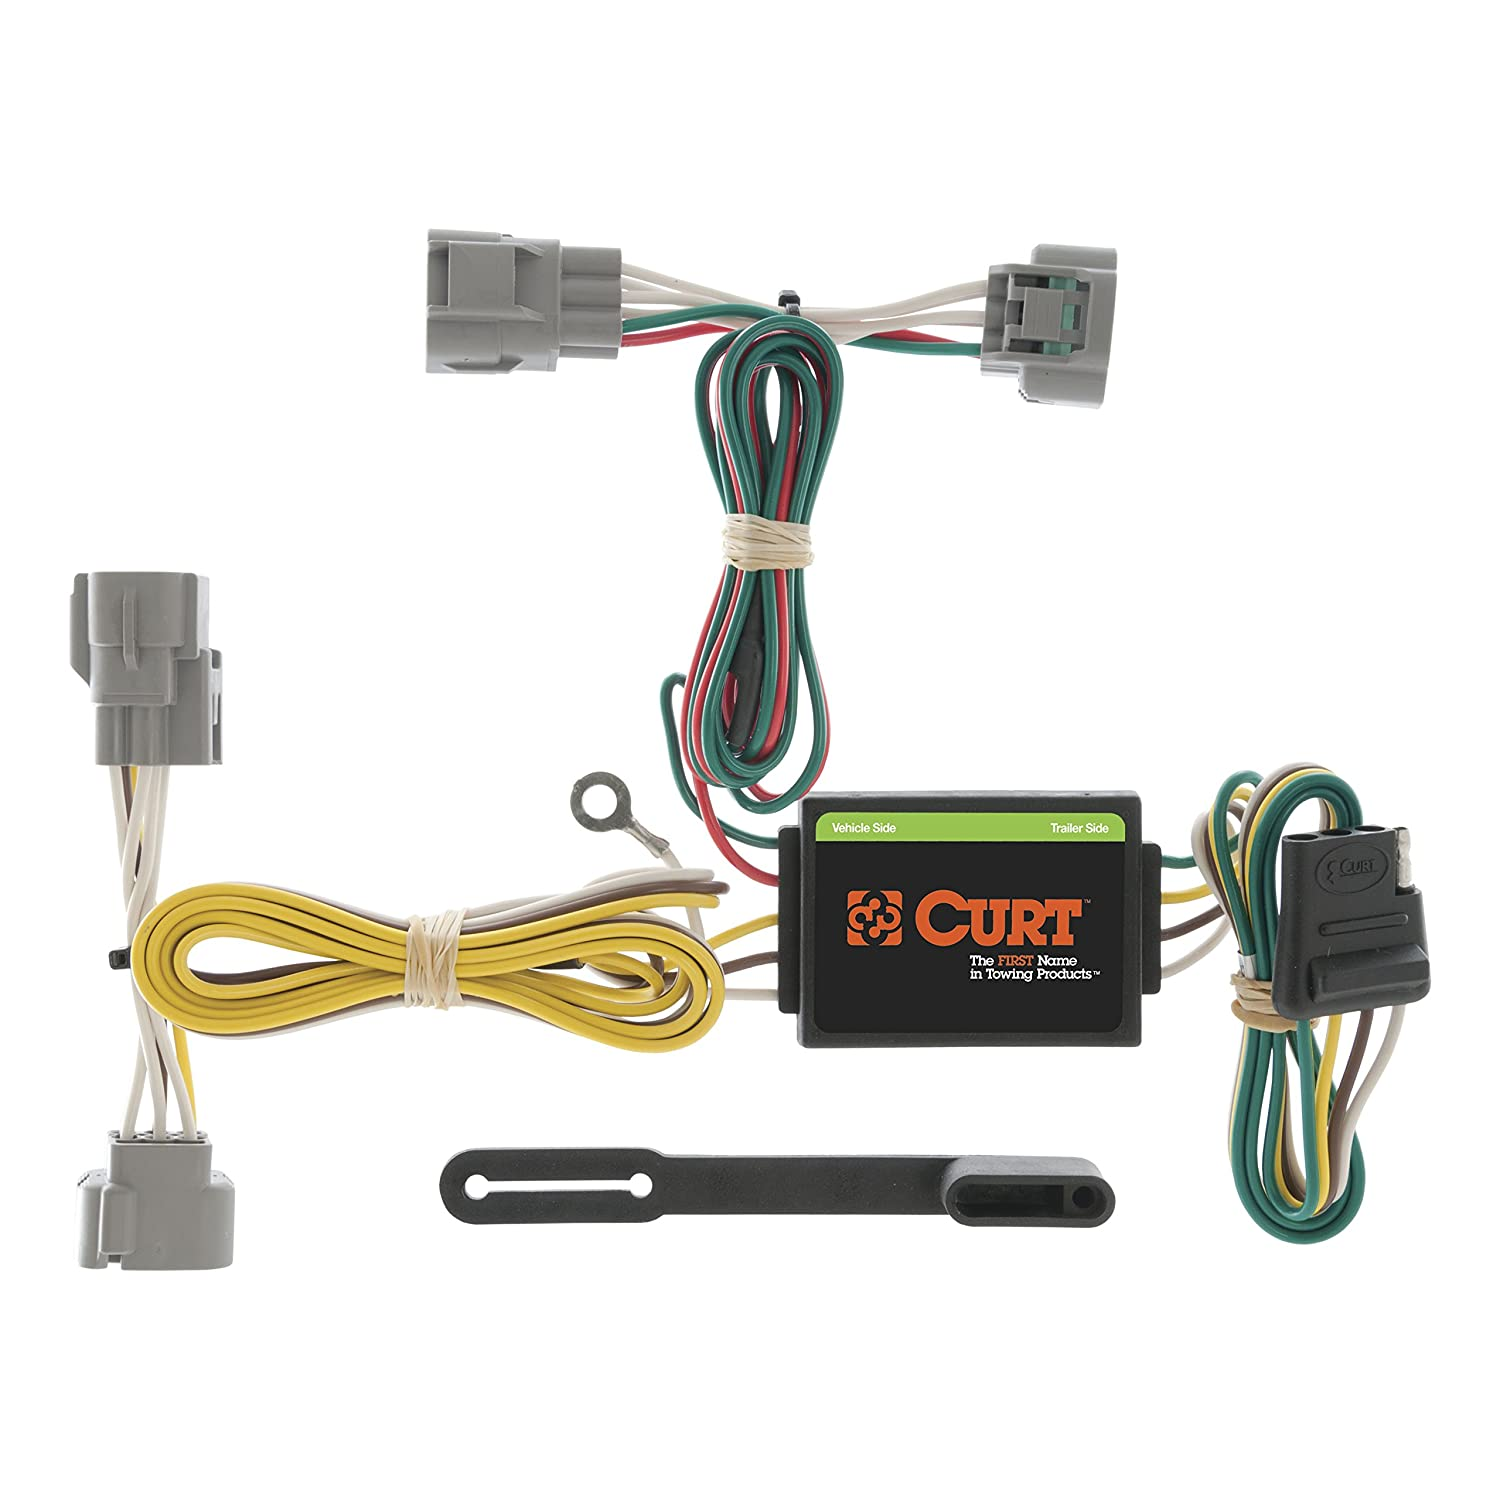 81 ef8zloFL._SL1500_ amazon com curt 55513 custom wiring harness automotive wiring harness for trailer hitch at alyssarenee.co